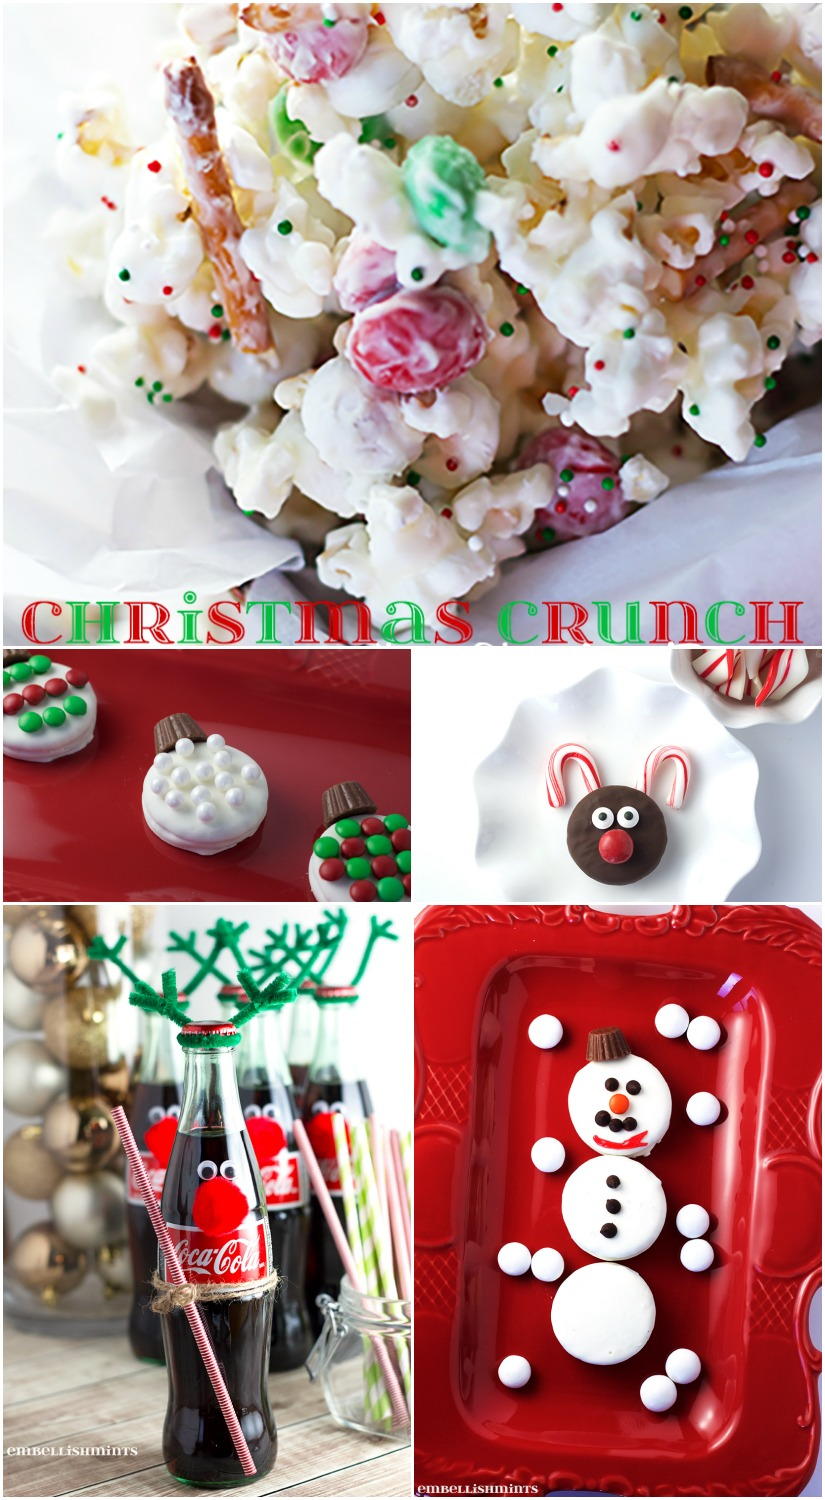 Peaceably Kids Party Food Ideas Families Party Food Display Ideas Kids Embellishmints Party Food Ideas Party Food Ideas nice food Christmas Party Food